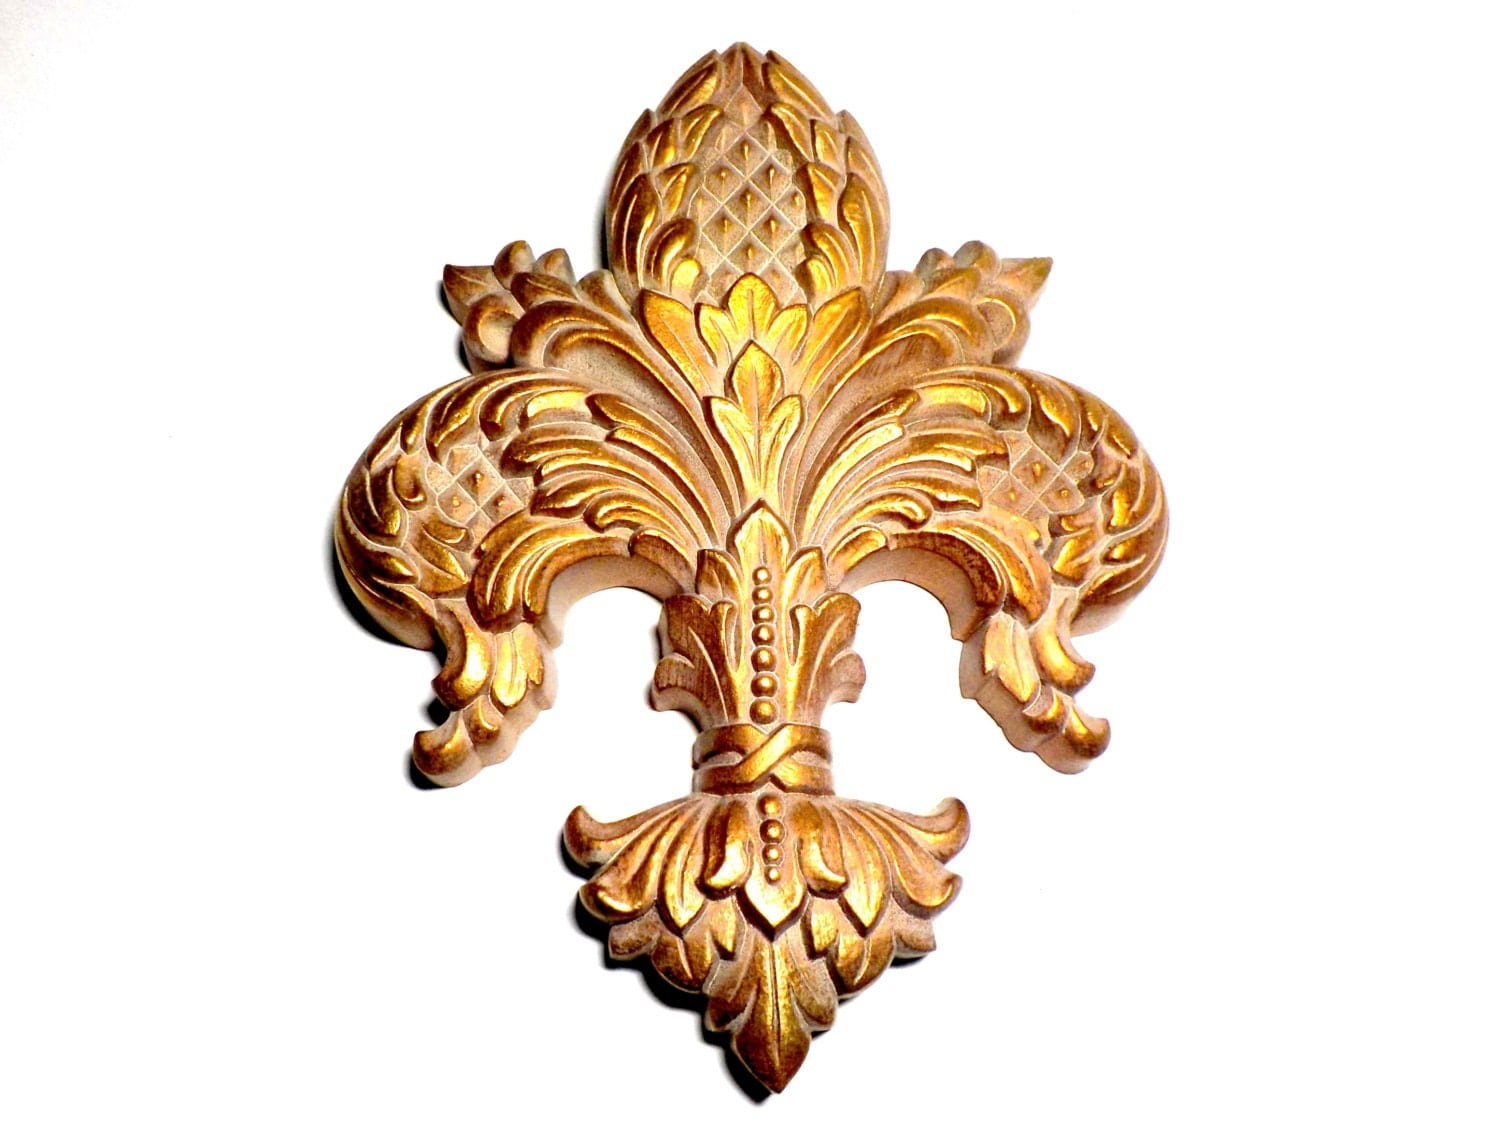 Vintage gold wall decor gold fleur de lis french decor old Fleur de lis wall